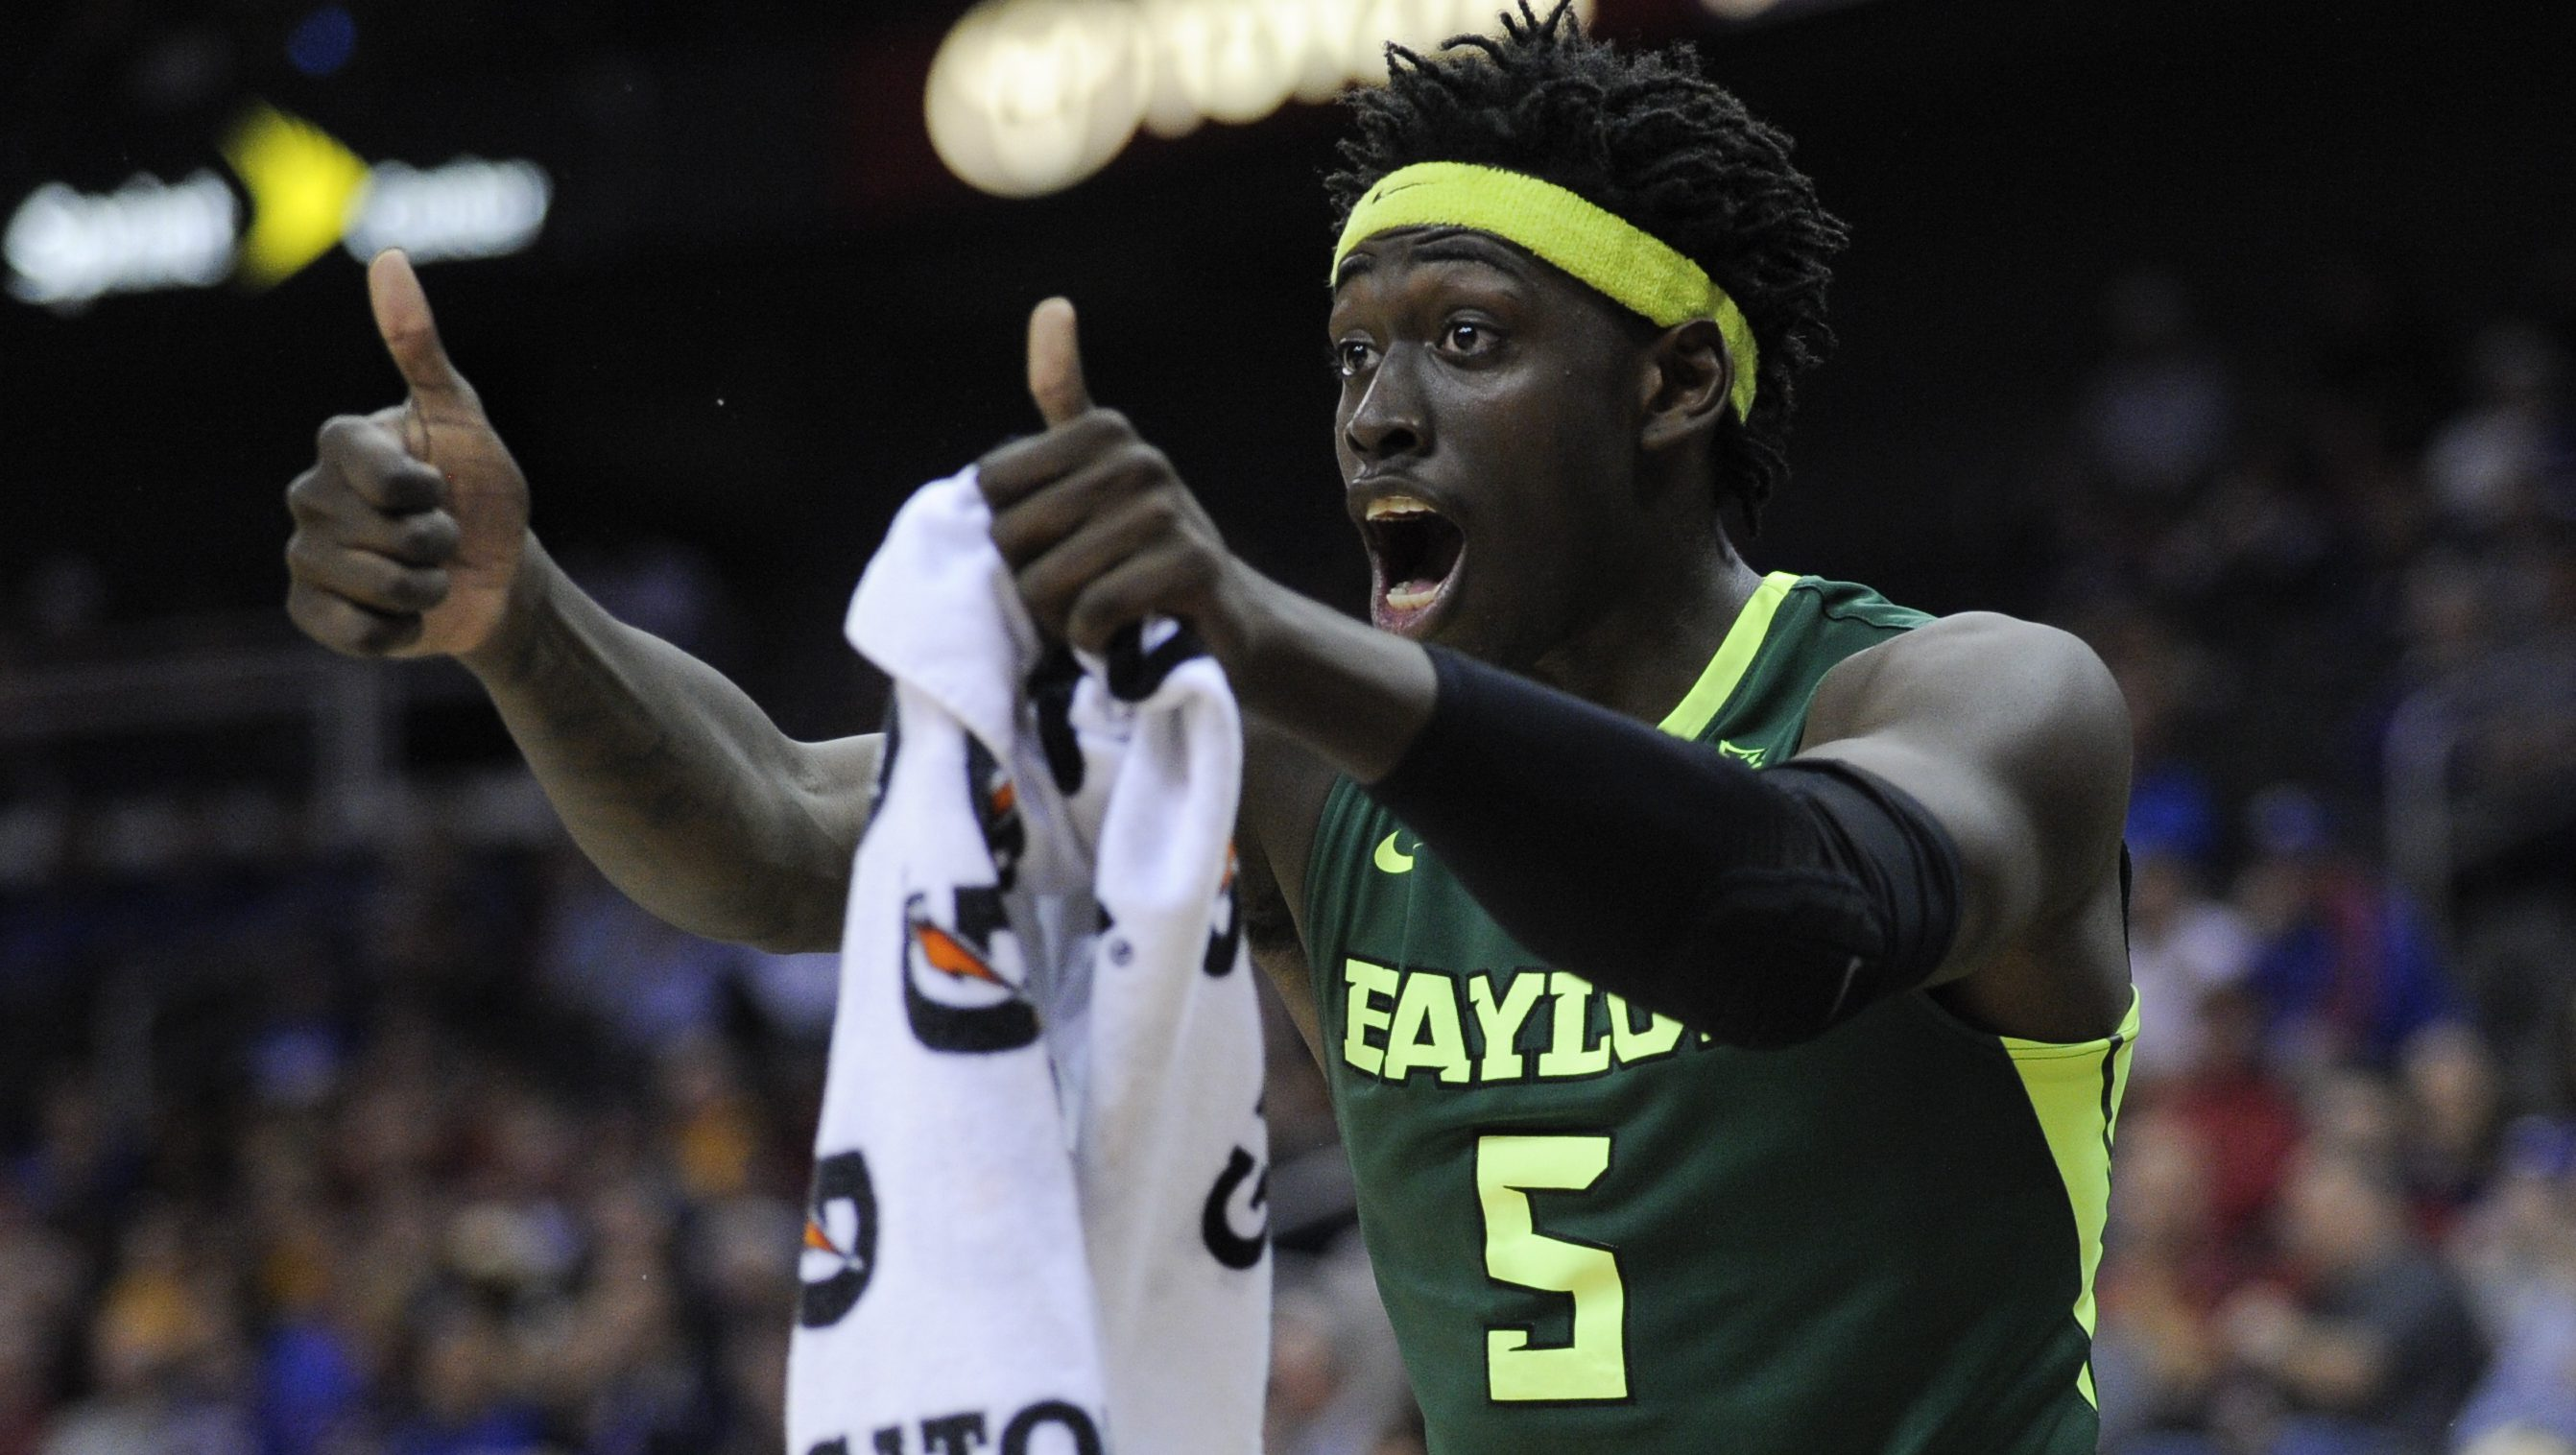 KANSAS CITY, MO - MARCH 10: Johnathan Motley #5 of the Baylor Bears cheers on his team during a game Texas Longhorns in the first half during the quarterfinals of the Big 12 Basketball Tournament at Sprint Center on March 10, 2016 in Kansas City, Missouri. (Photo by Ed Zurga/Getty Images)